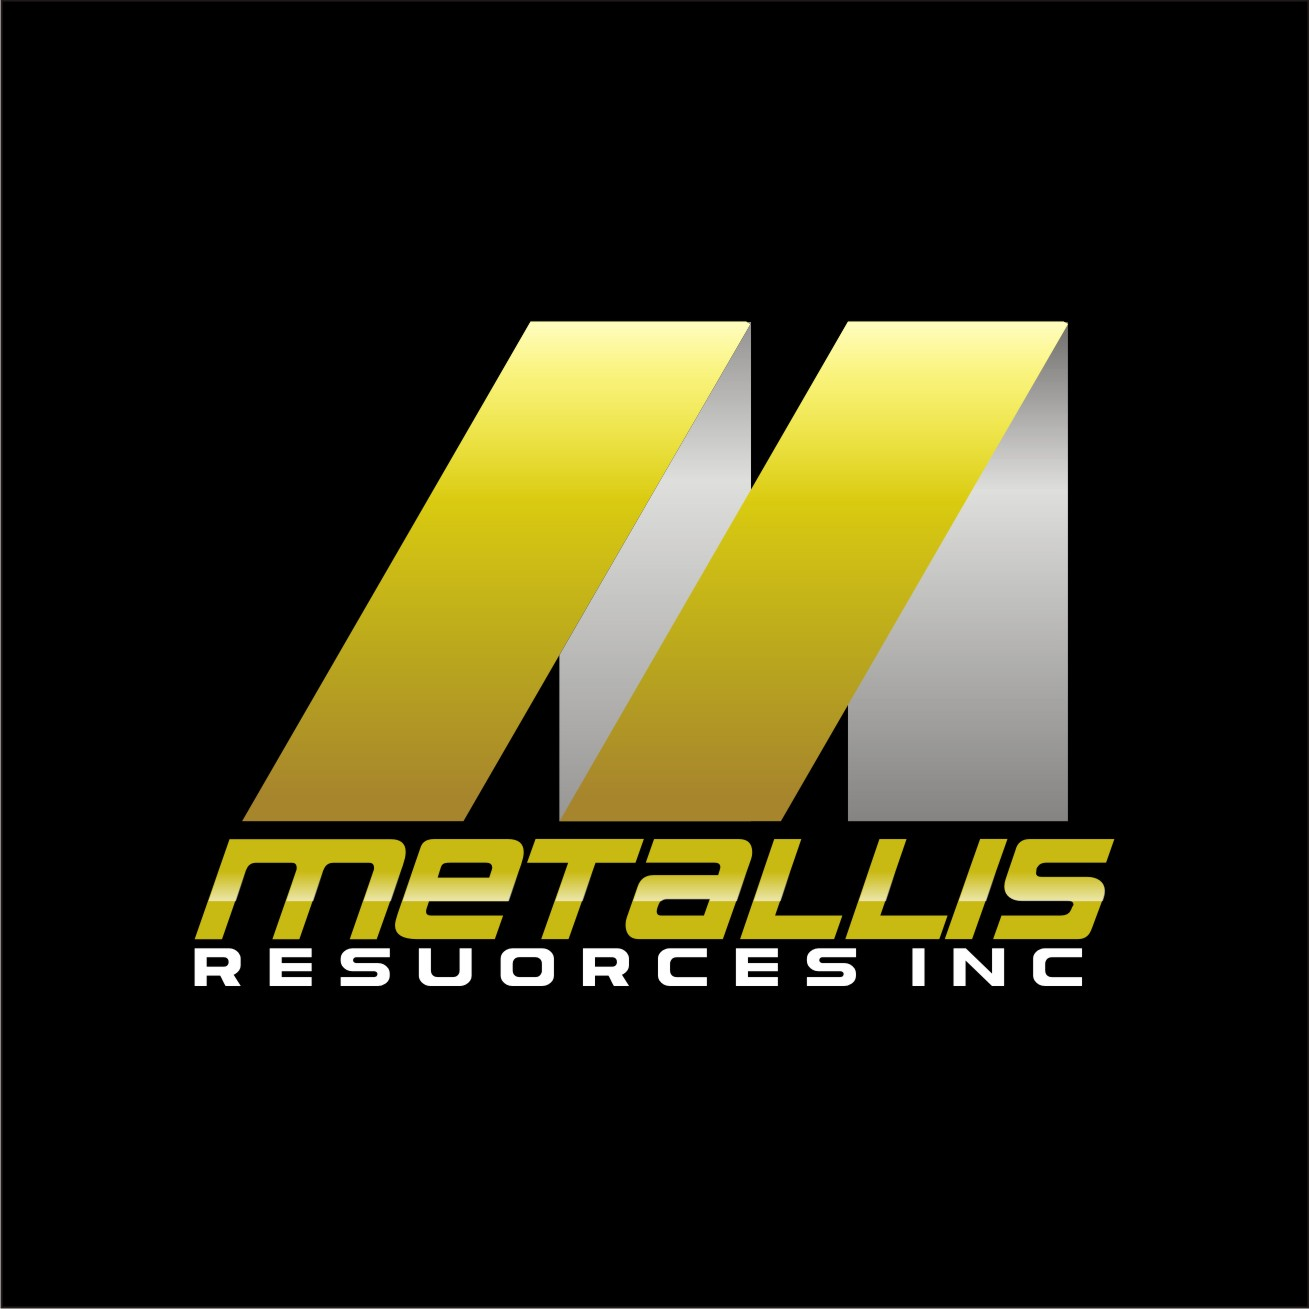 Logo Design by Rock n Rool - Entry No. 79 in the Logo Design Contest Metallis Resources Inc Logo Design.